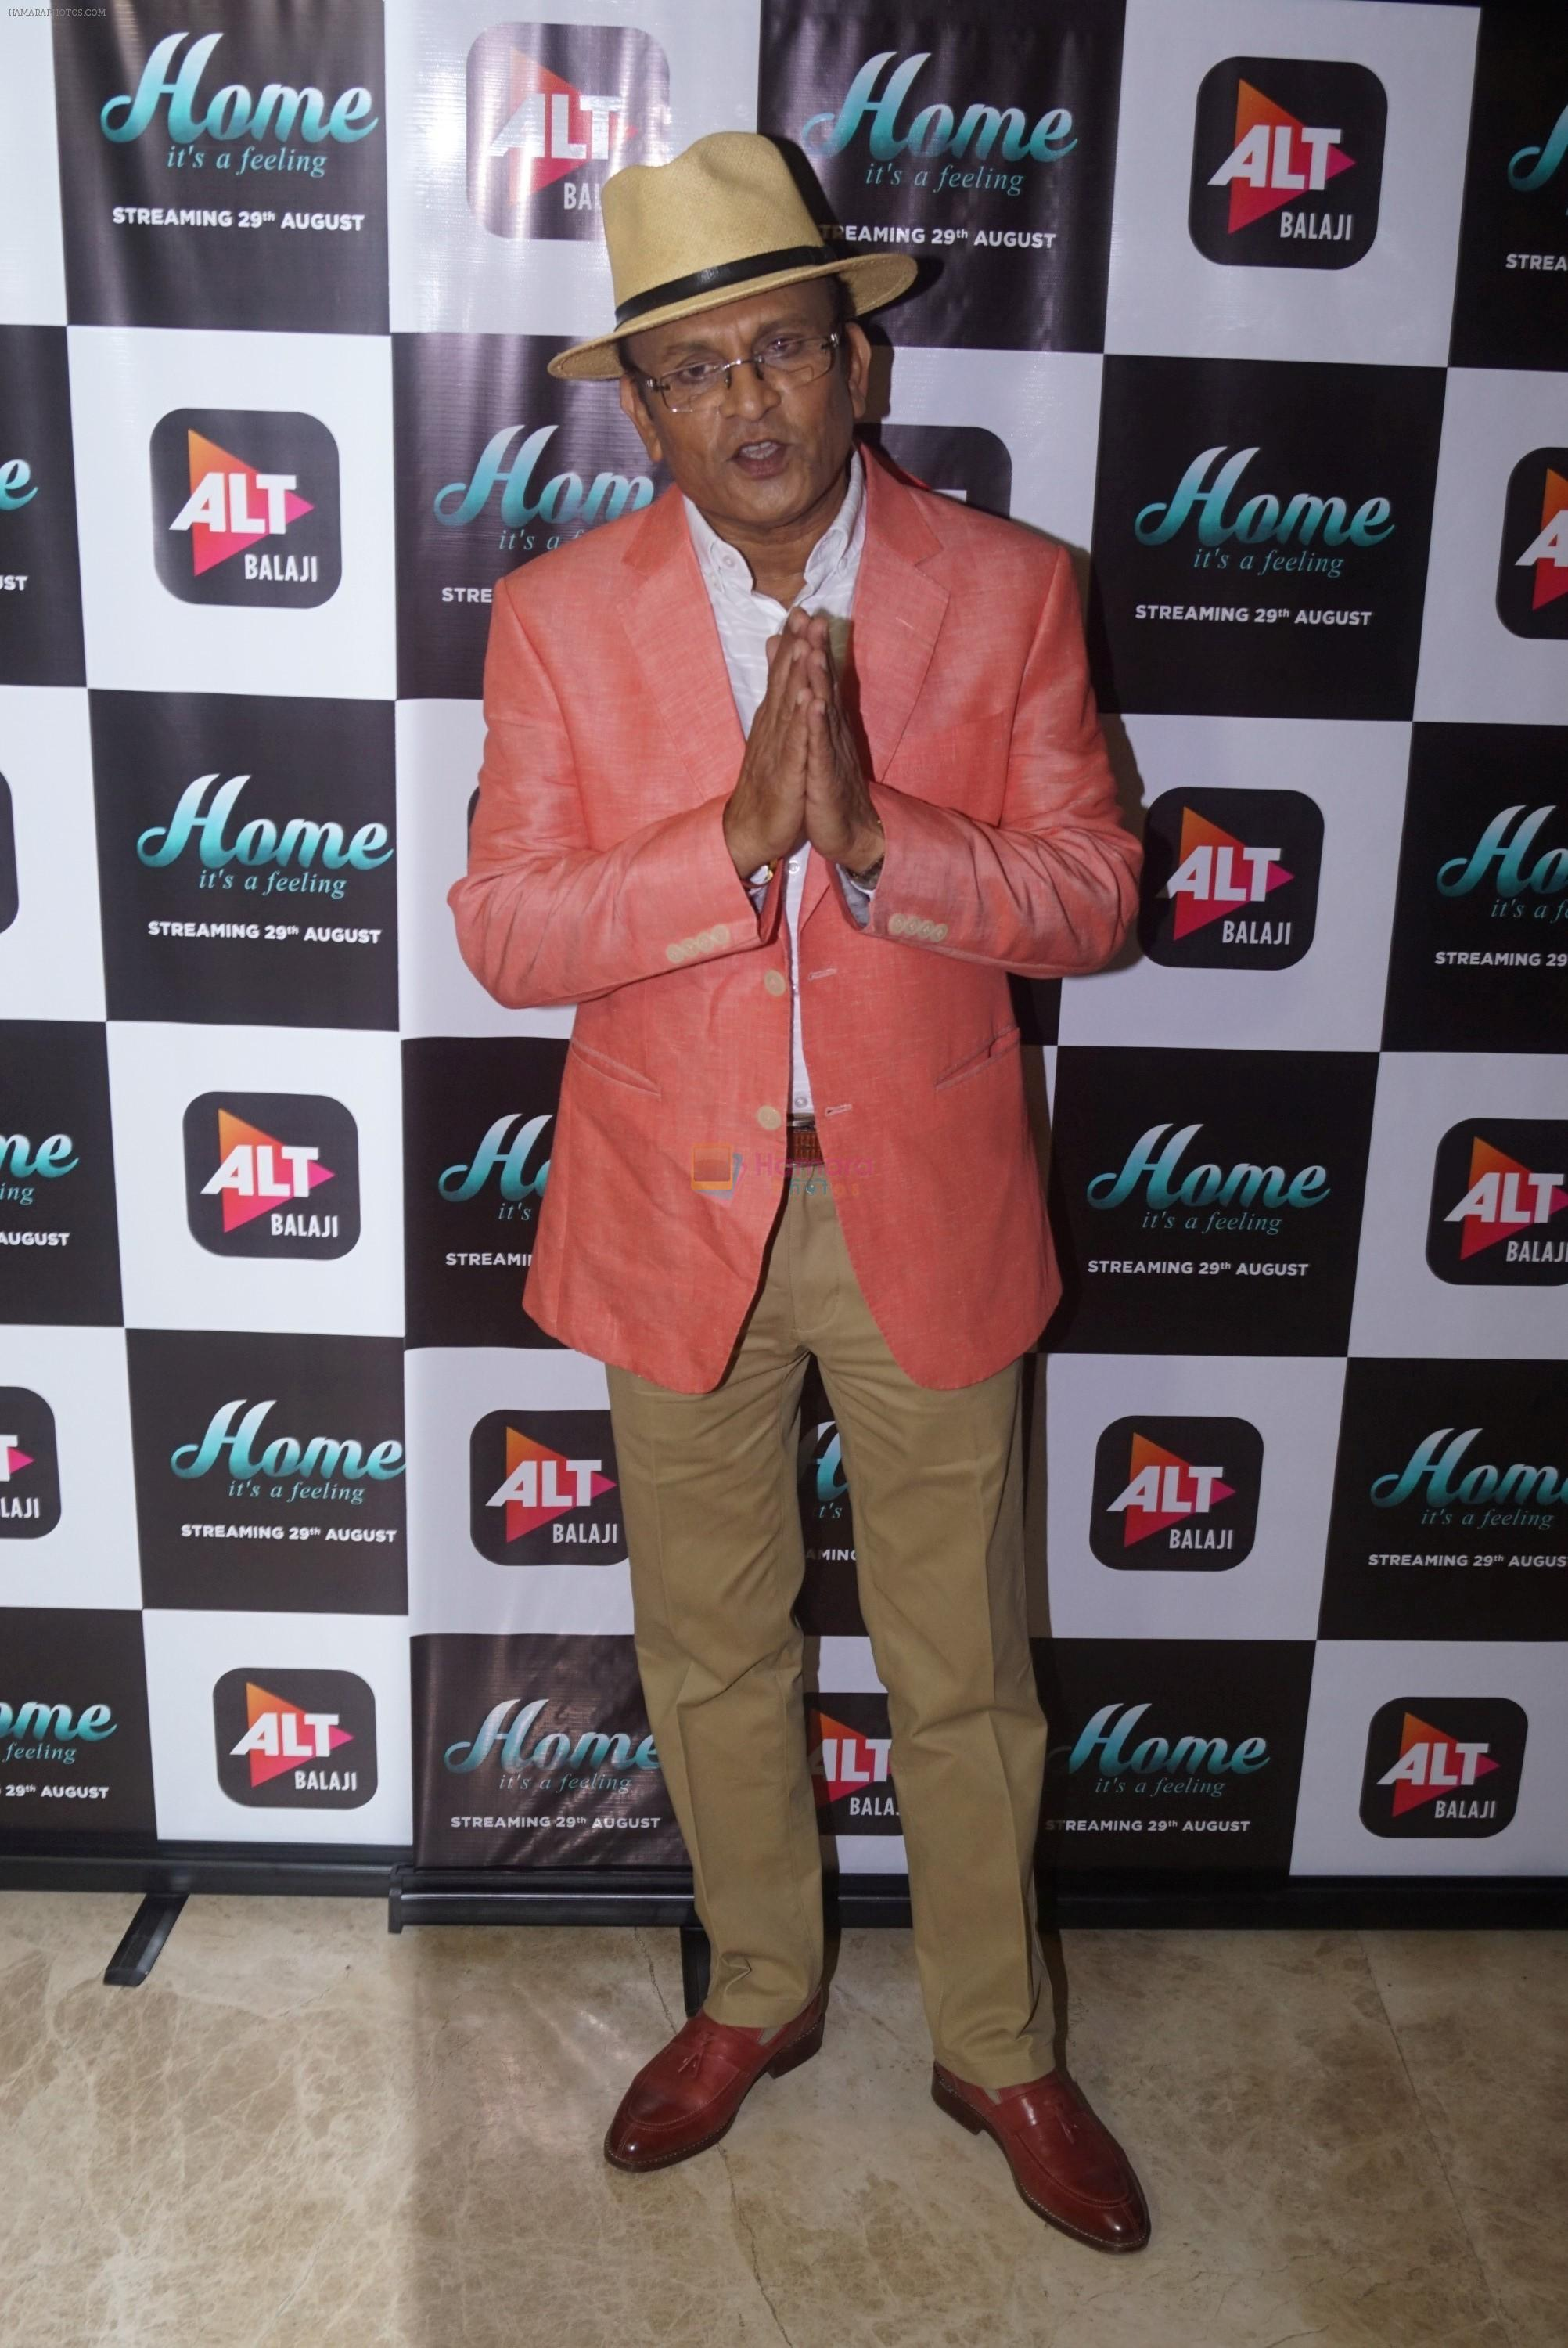 Annu Kapoor at the Trailer Launch Of Upcoming Alt Balaji's Web Series Home on 15th Aug 2018